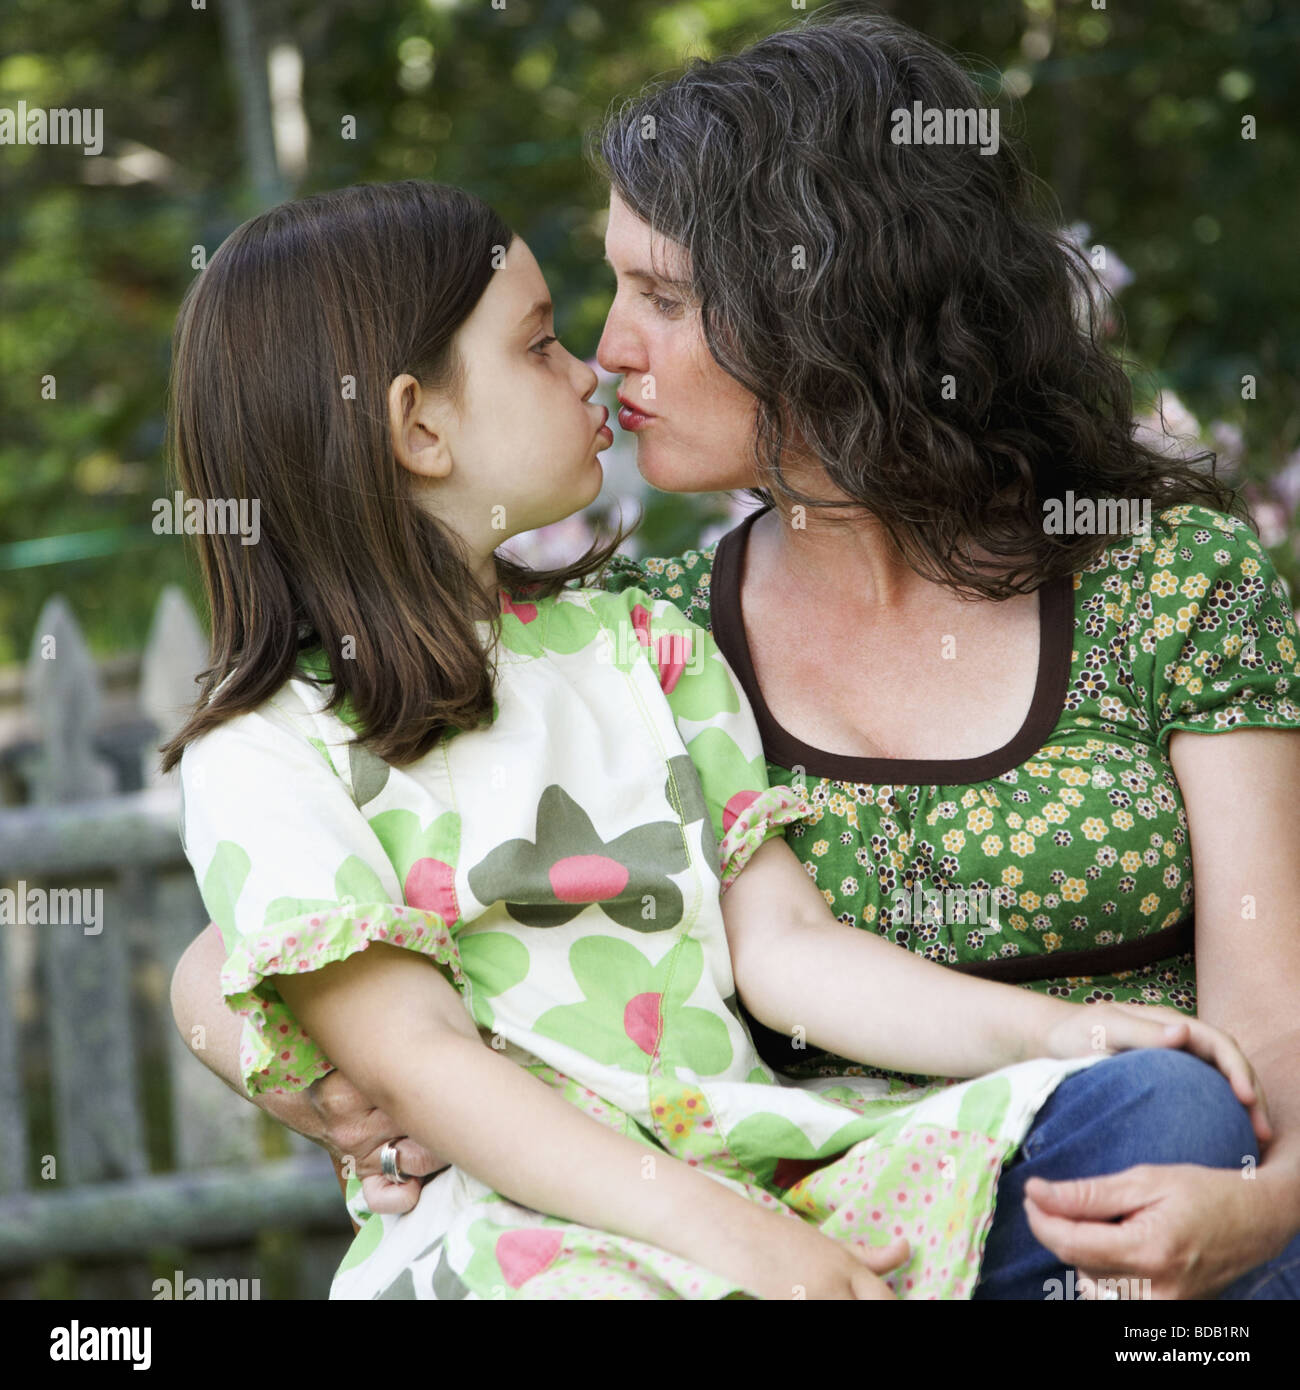 Mature woman with a girl kissing each other - Stock Image